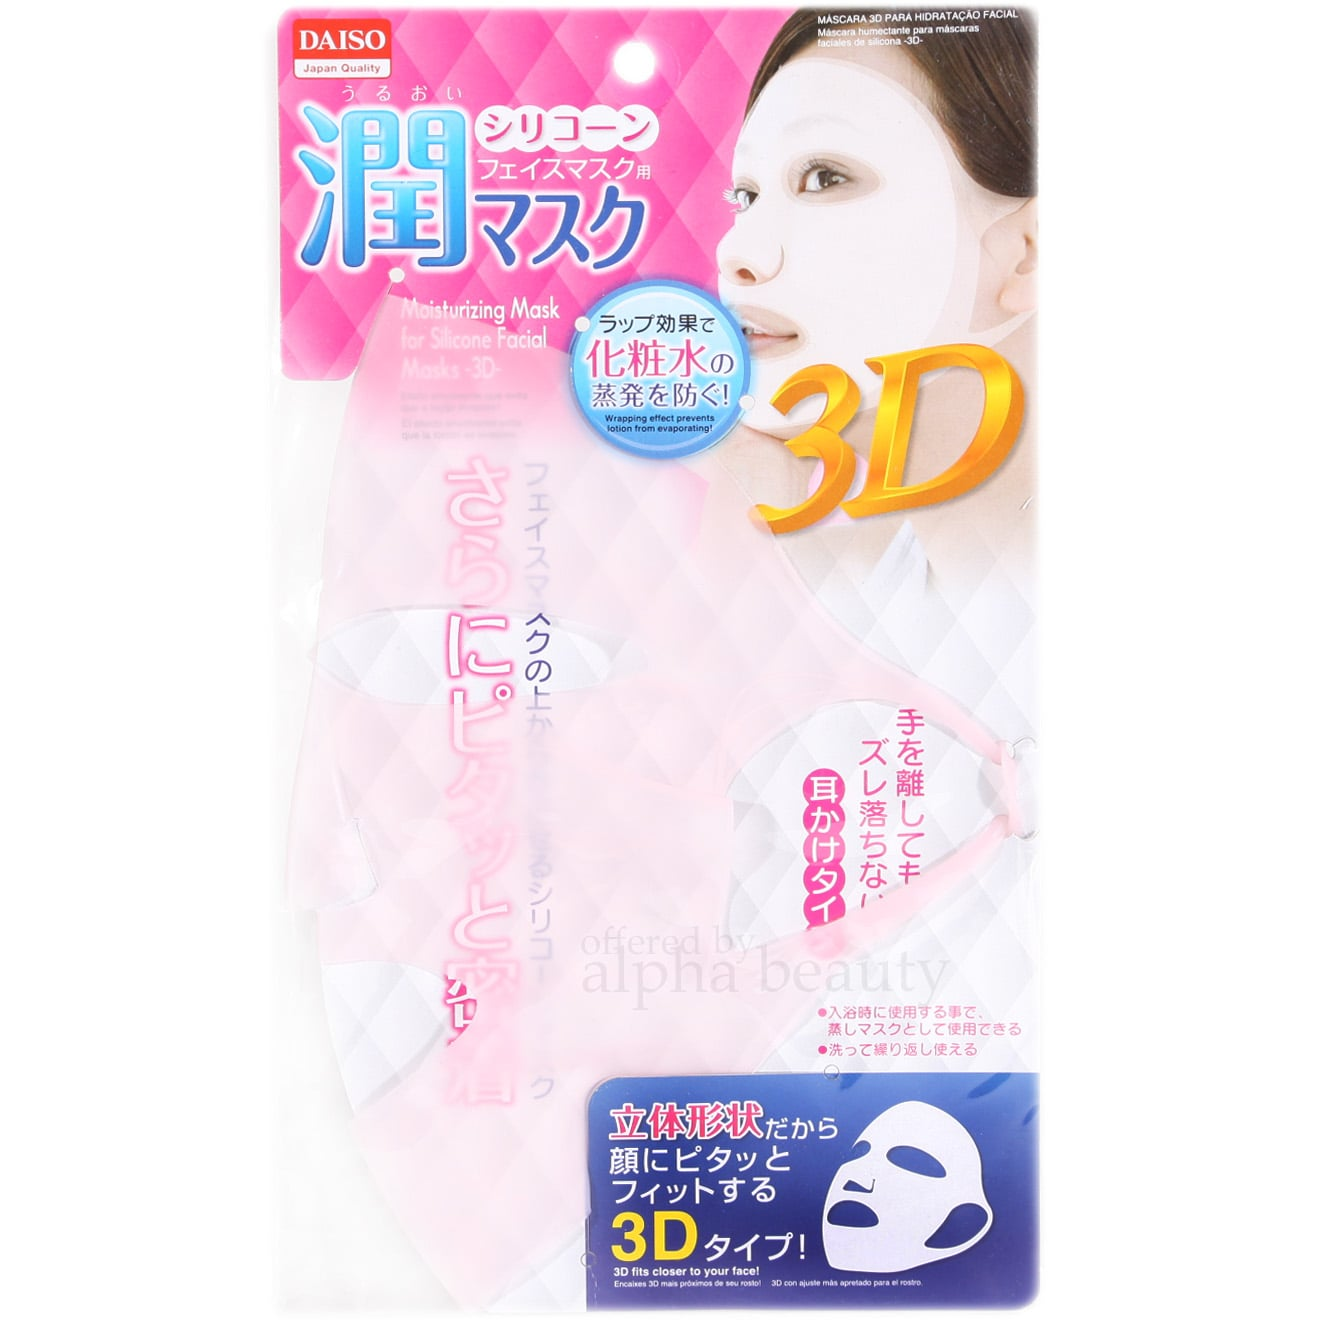 I Got My New Favorite Skincare Item in Japan, but It s Available on Amazon For $6